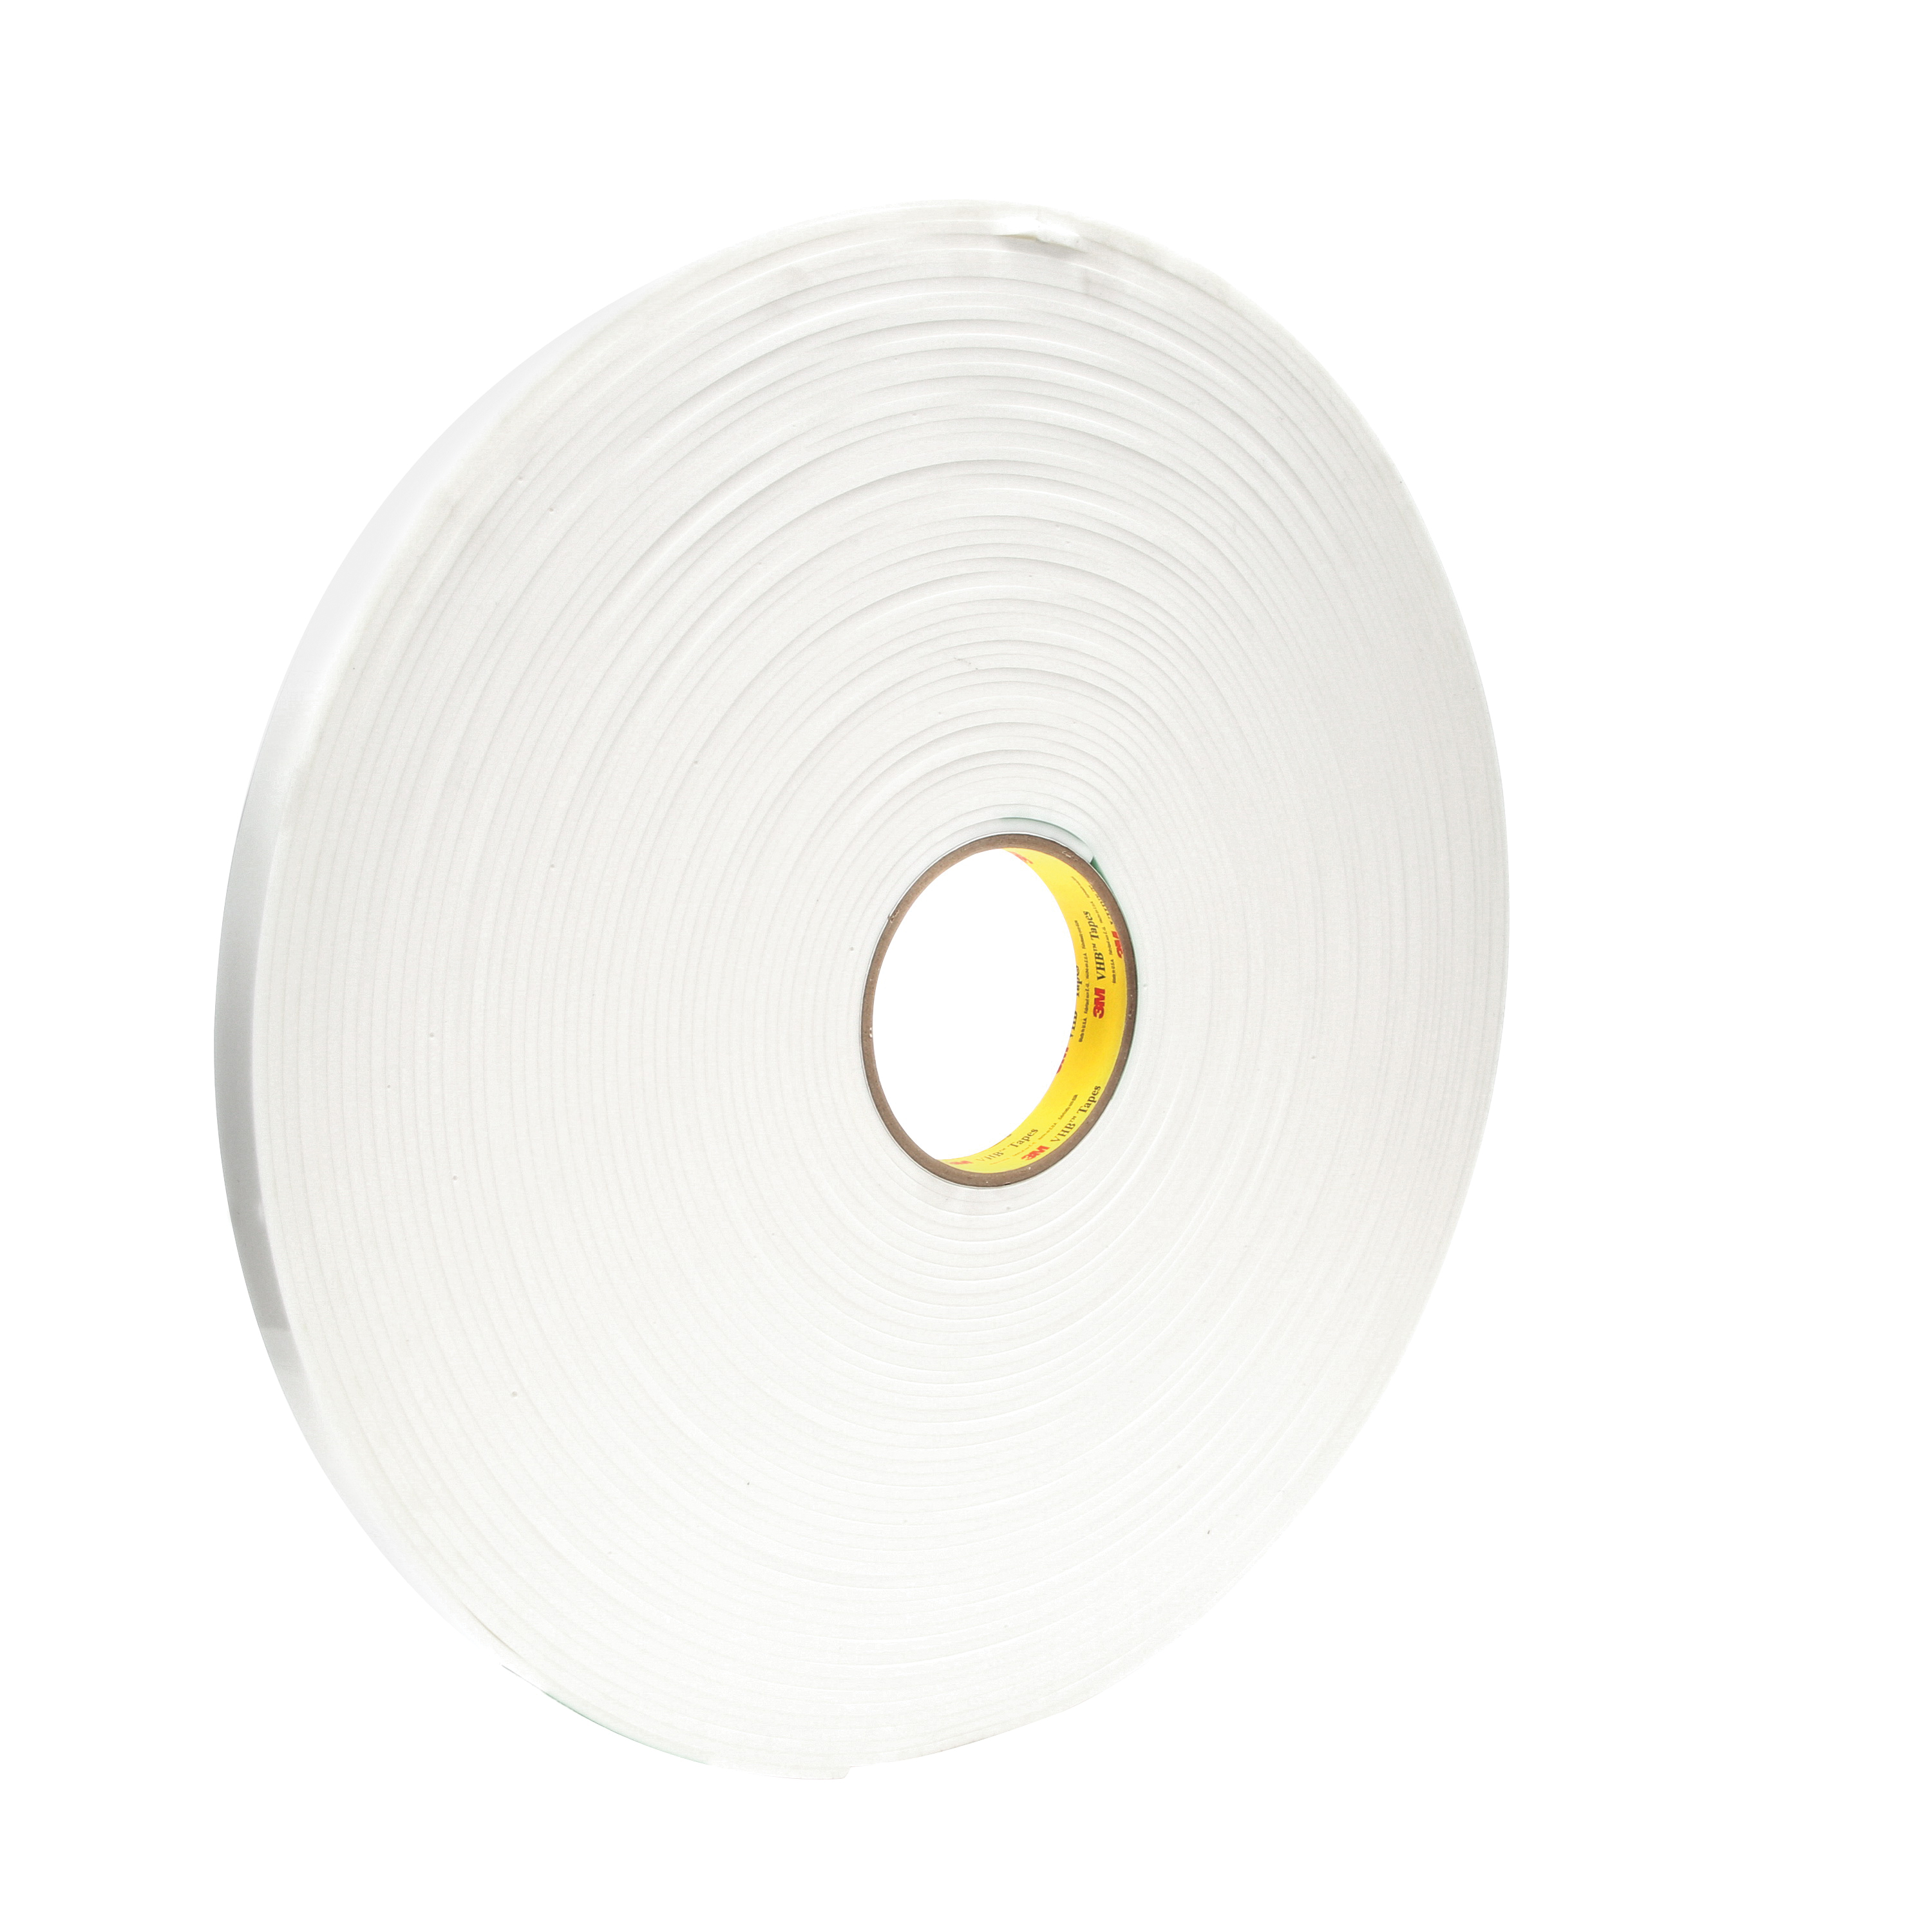 3M™ VHB™ 021200-67504 Pressure Sensitive Double Sided Bonding Tape, 36 yd L x 3/4 in W, 0.12 in THK, General Purpose Acrylic Adhesive, Acrylic Foam Backing, White